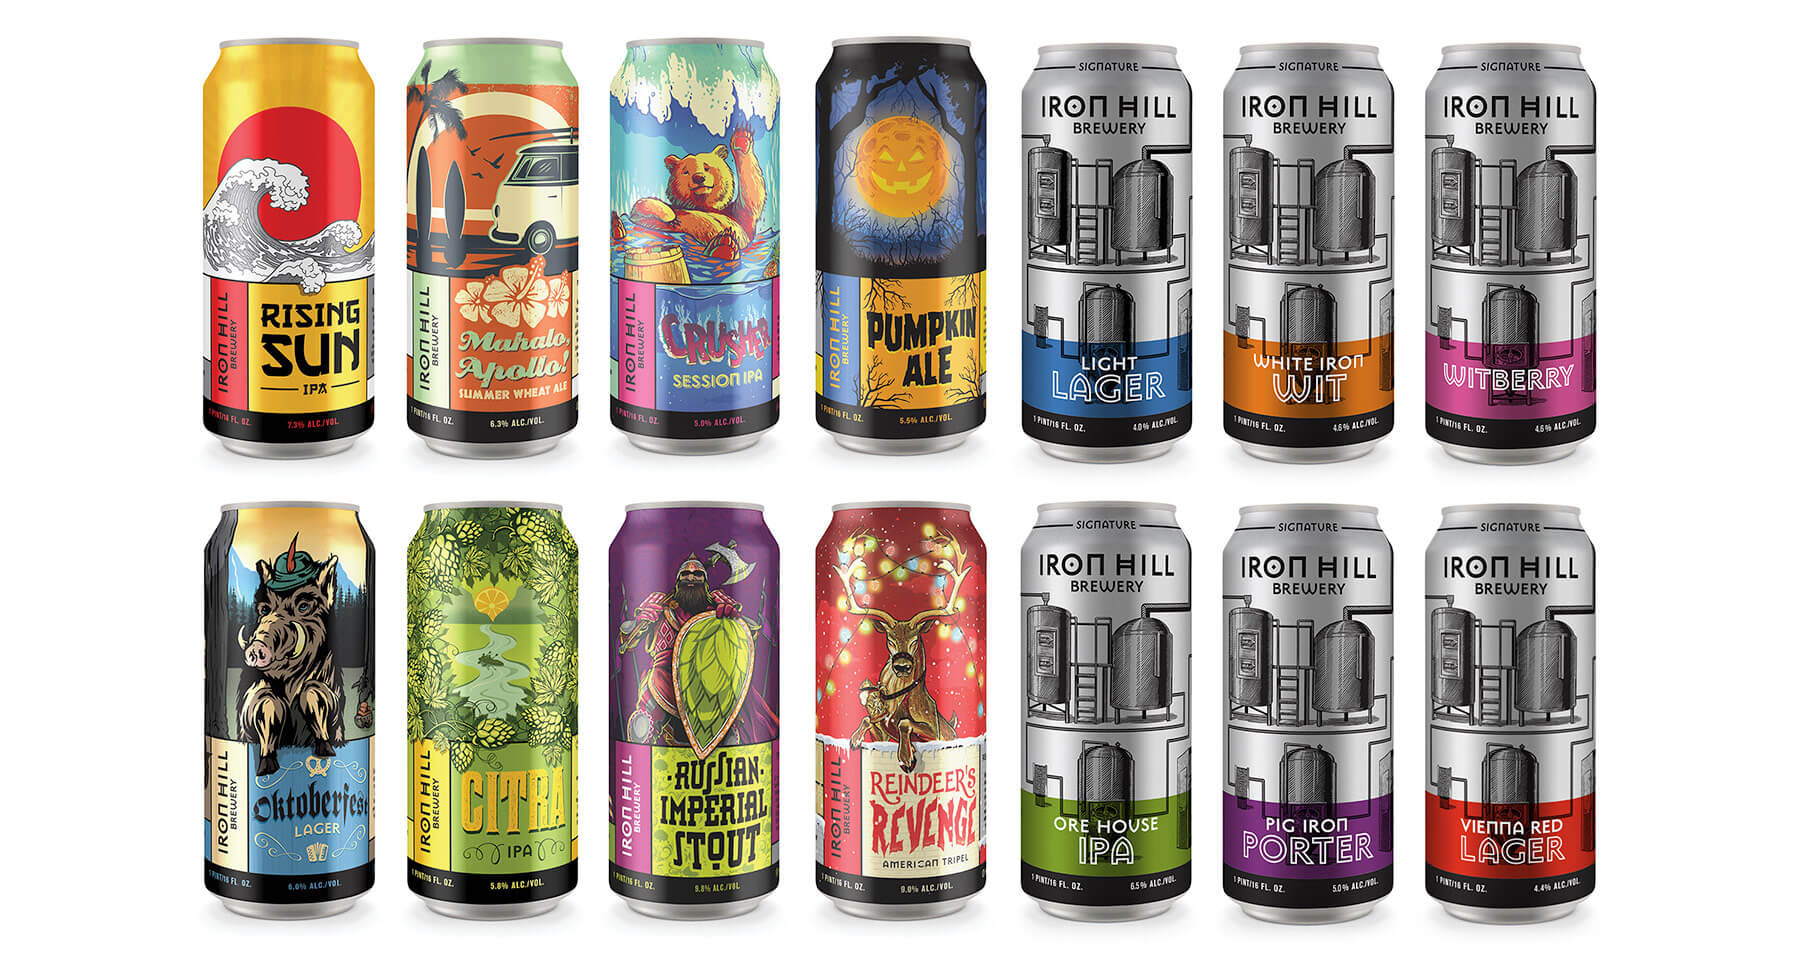 An array of 14 cans we designed for Iron Hill Brewery.